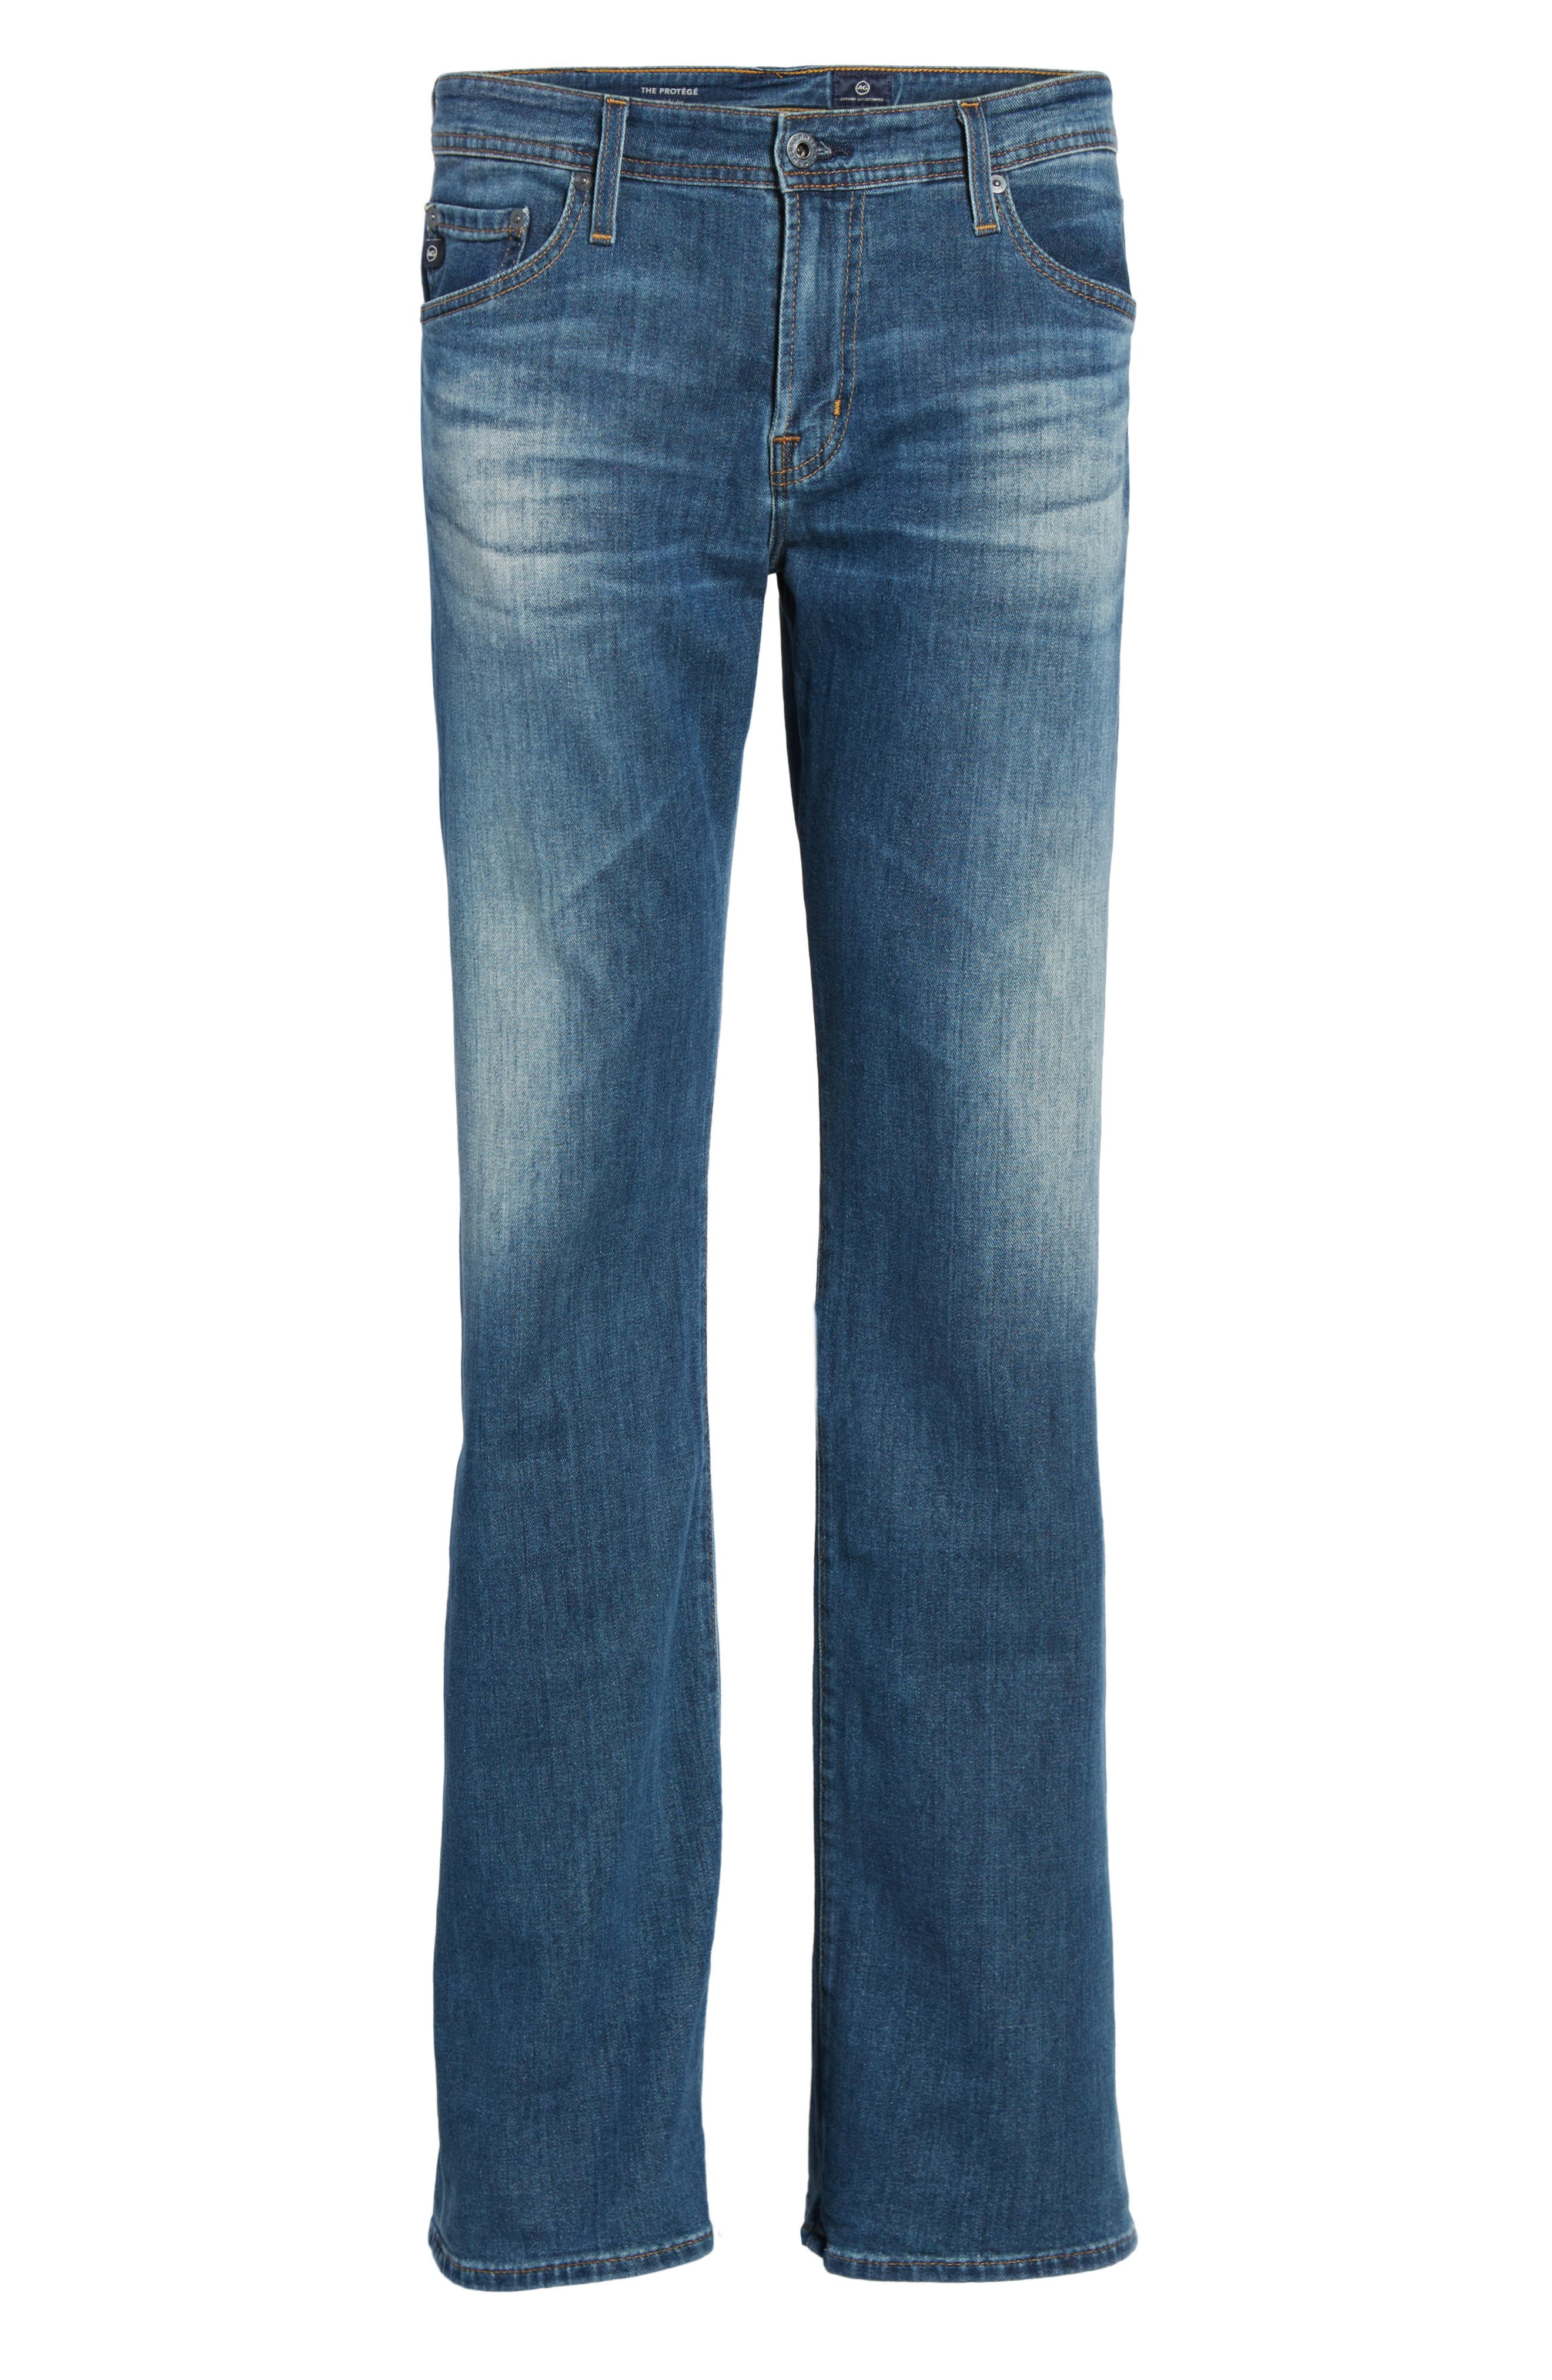 Protégé Relaxed Fit Jeans,                             Alternate thumbnail 6, color,                             Four Rivers